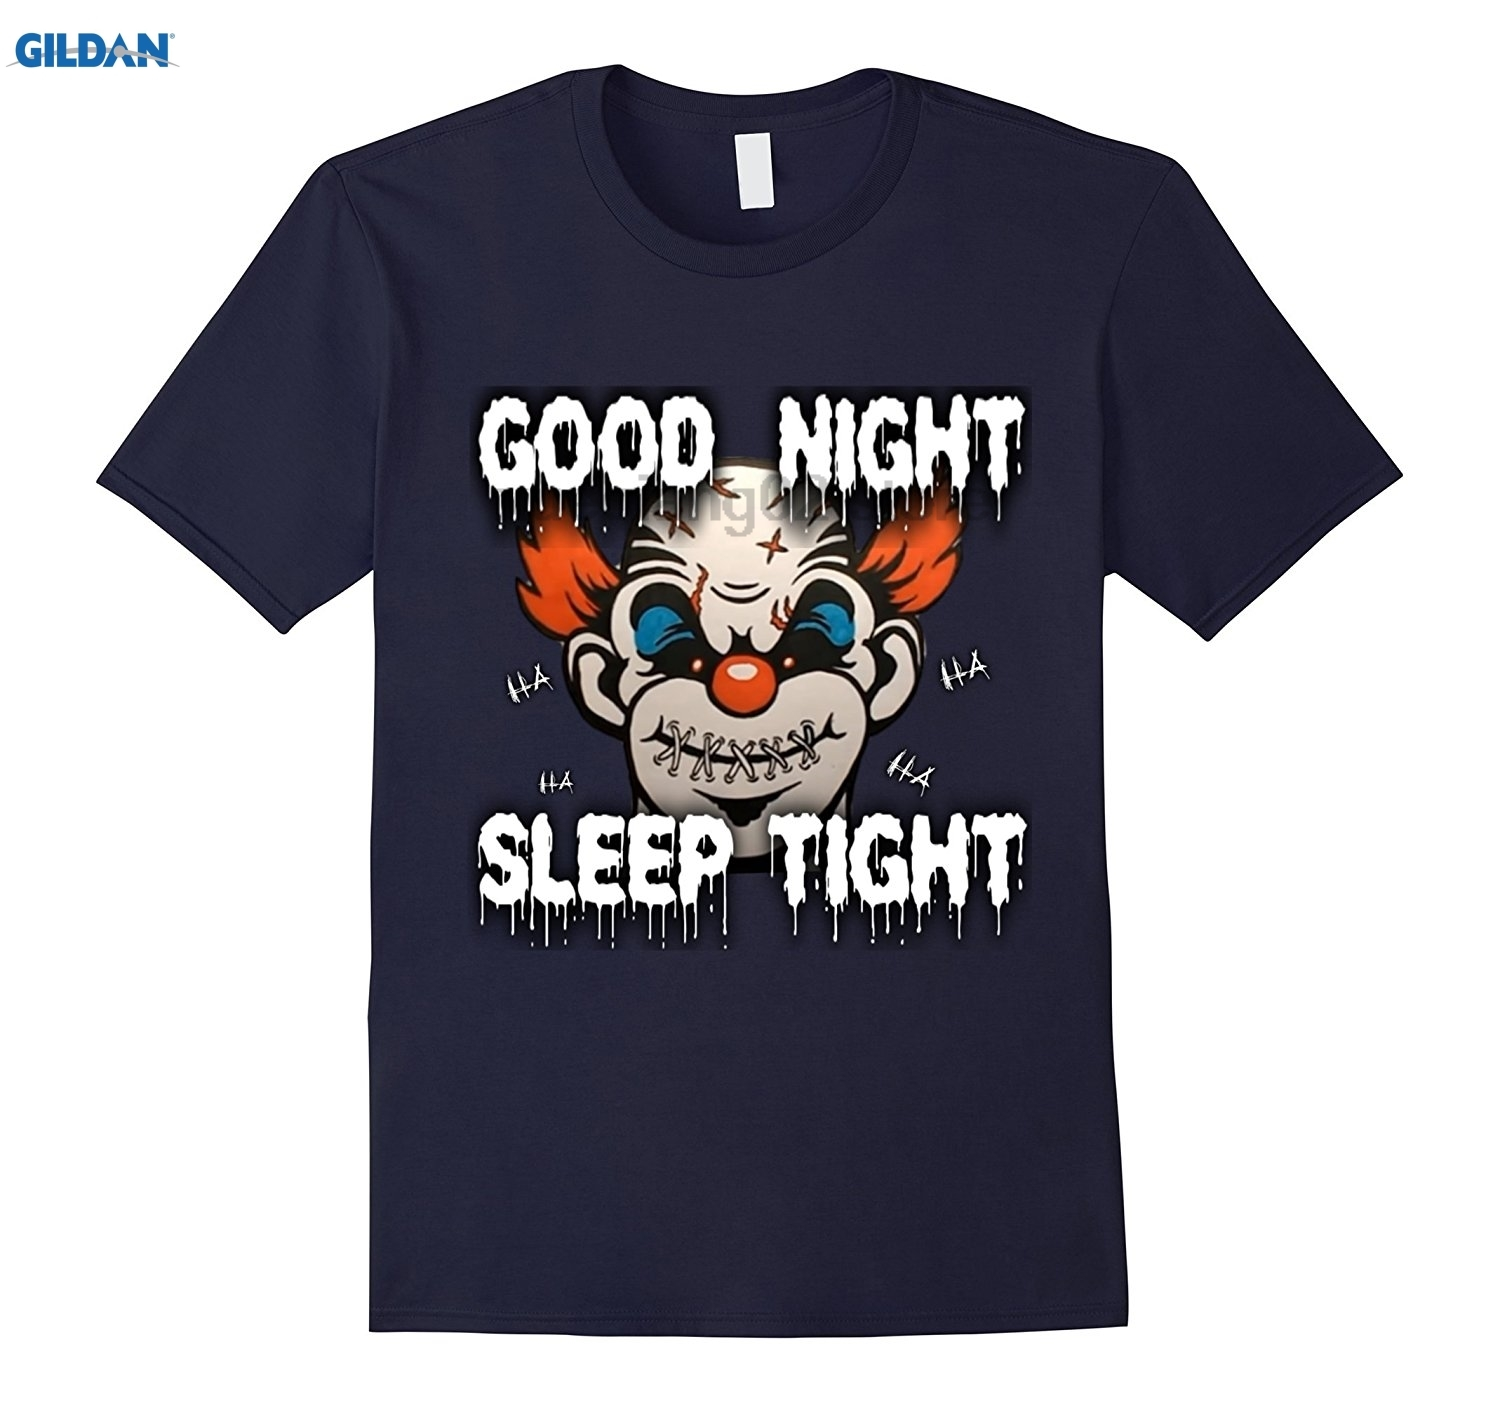 GILDAN COOL GIFT GOOD NIGHT SLEEP TIGHT SCARY EVIL CLOWN T-SHIRT